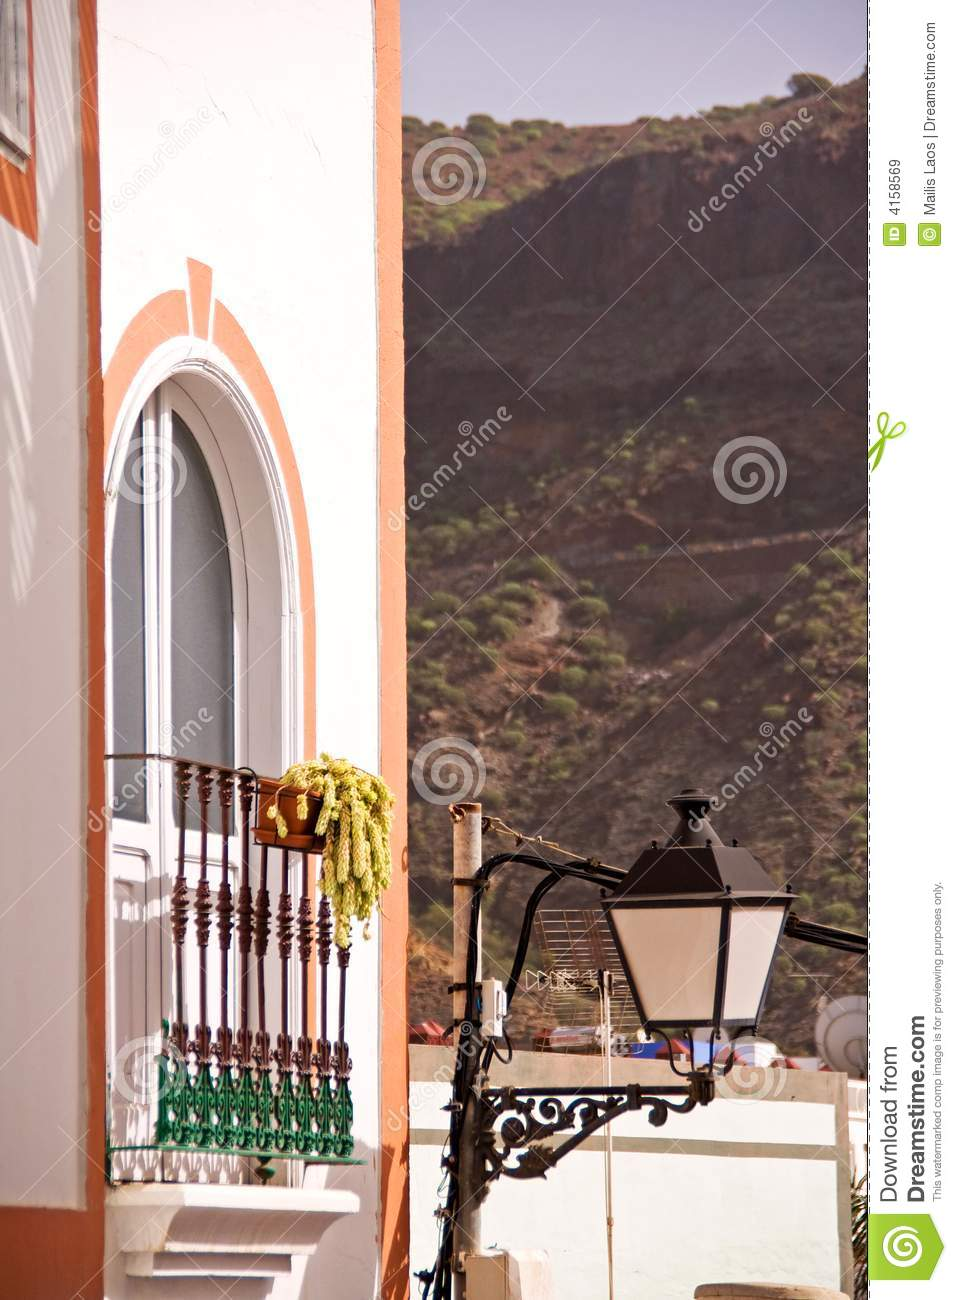 House in gran canaria stock image image of exterior - Houses in gran canaria ...